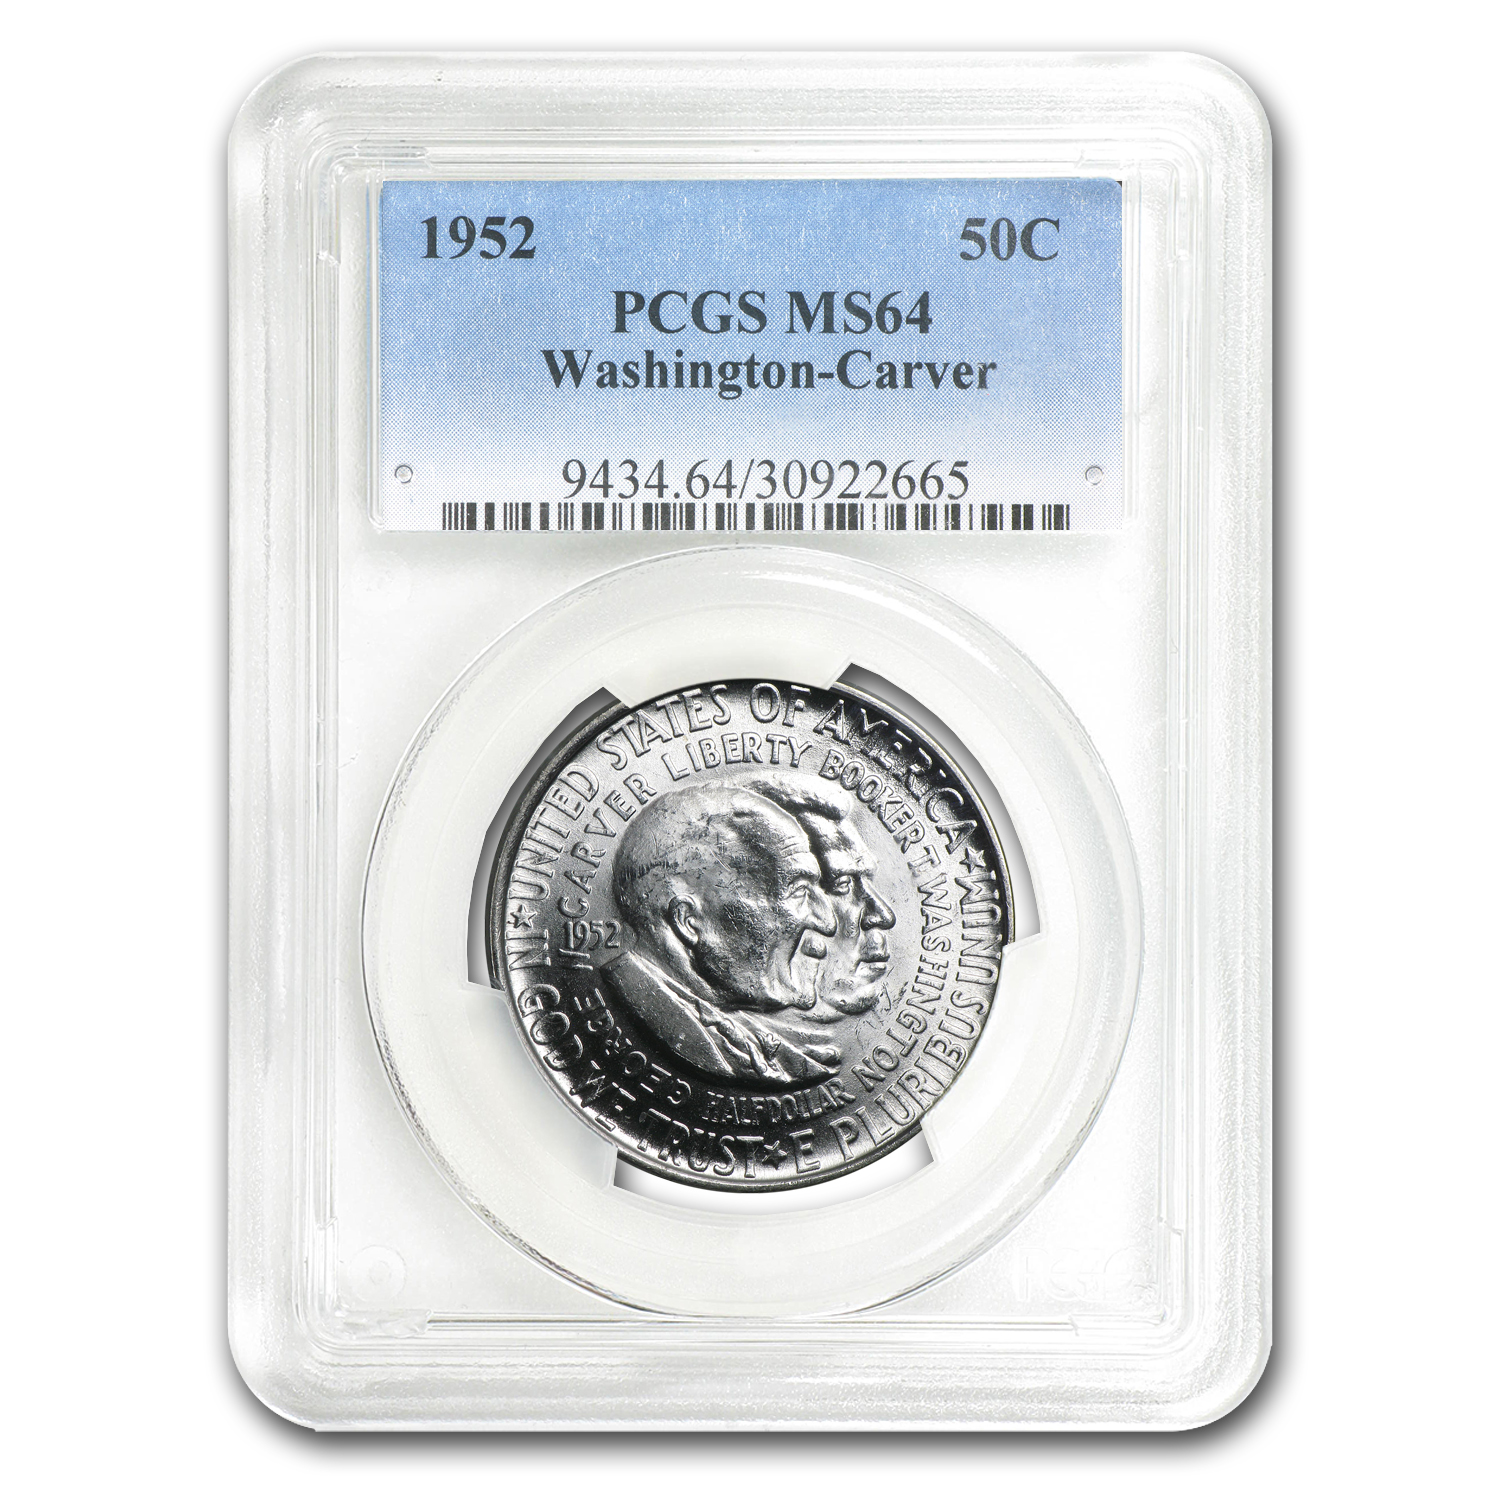 1952 Washington-Carver Half MS-64 PCGS